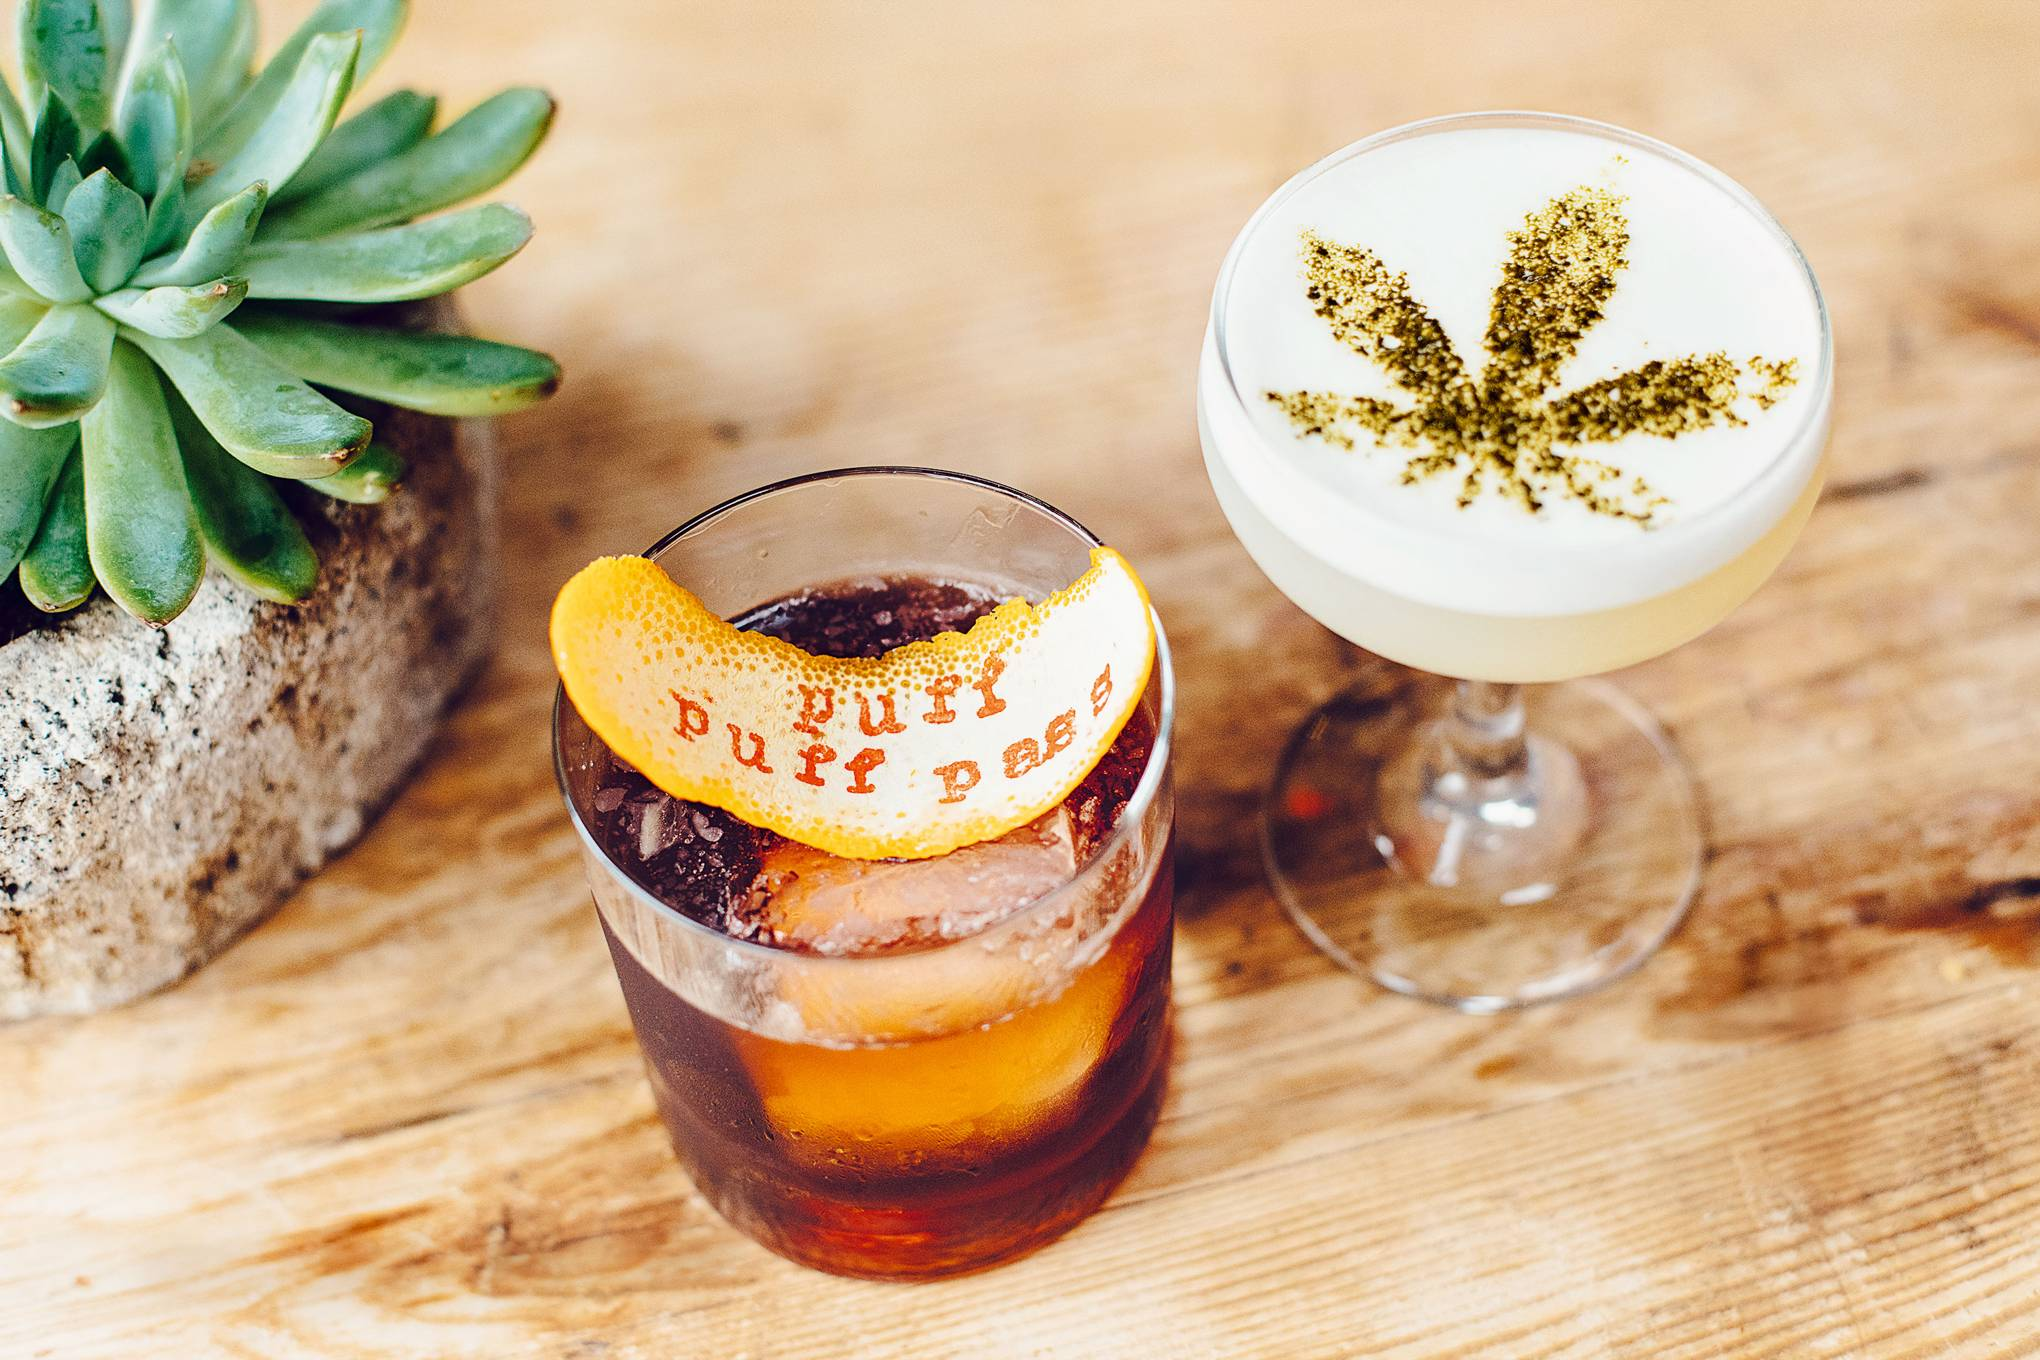 Where to try the new CBD food trend